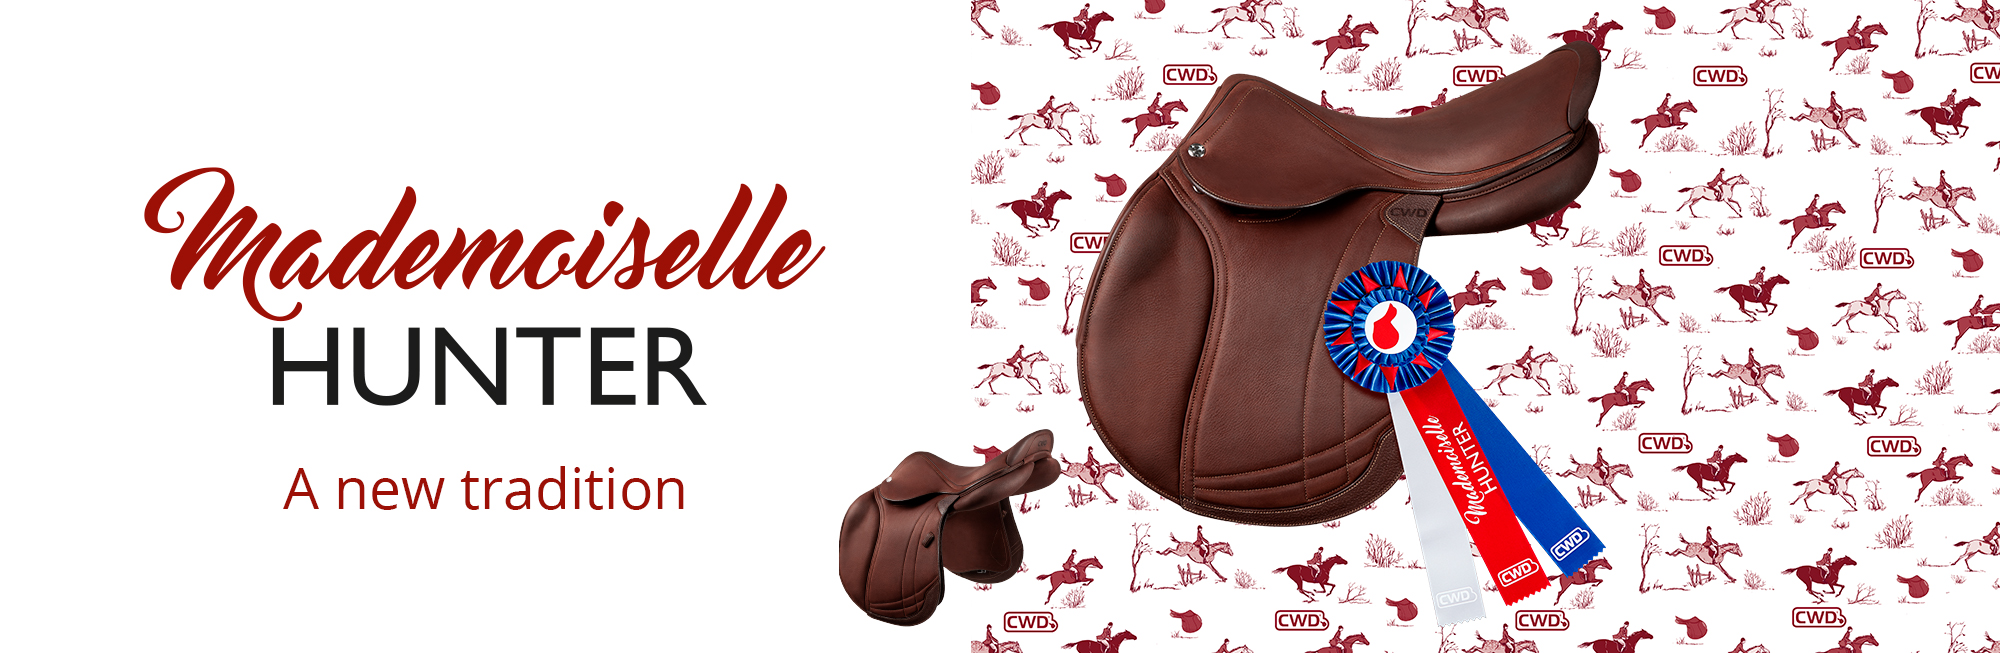 Selle 2Gs Mademoiselle Hunter